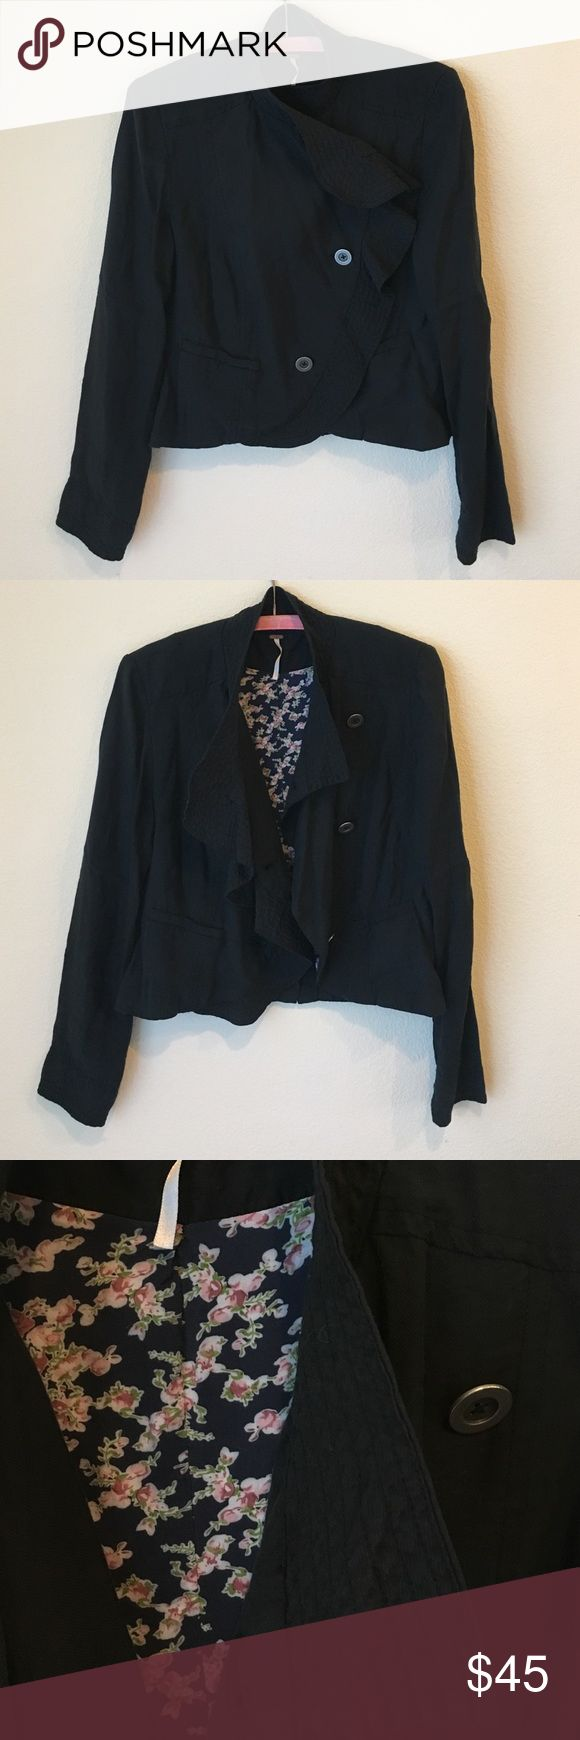 Free People jacket Free People copped style jacket.  Looks cute all buttoned up or left open.  Perfect for Spring or Summer, thin fabric. Free People Jackets & Coats Blazers